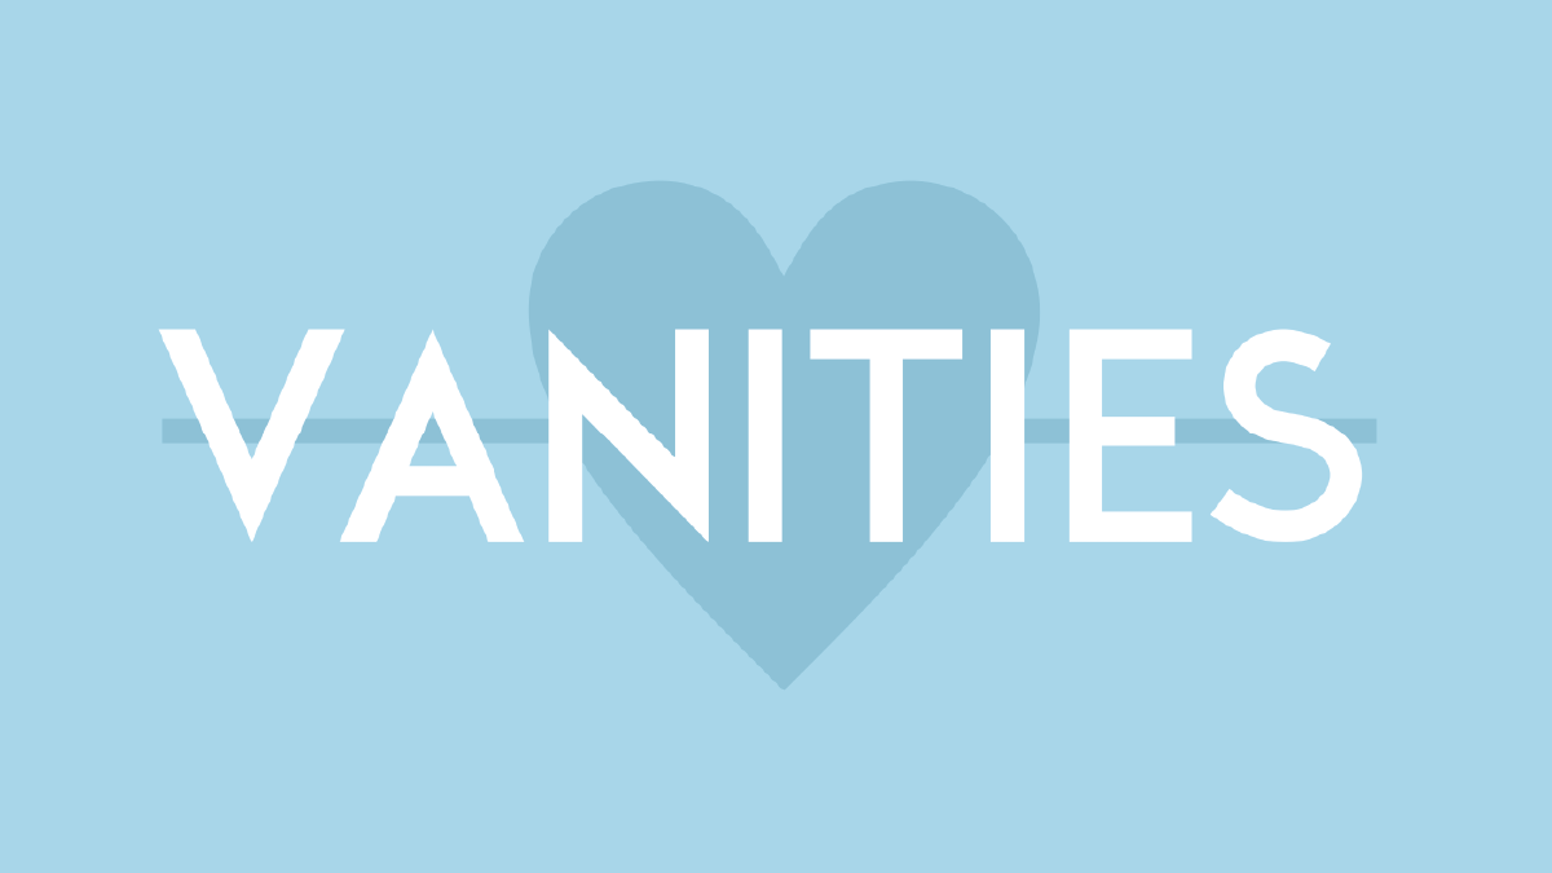 Vanities - A Comedy of Sisterhood and Self Discovery by